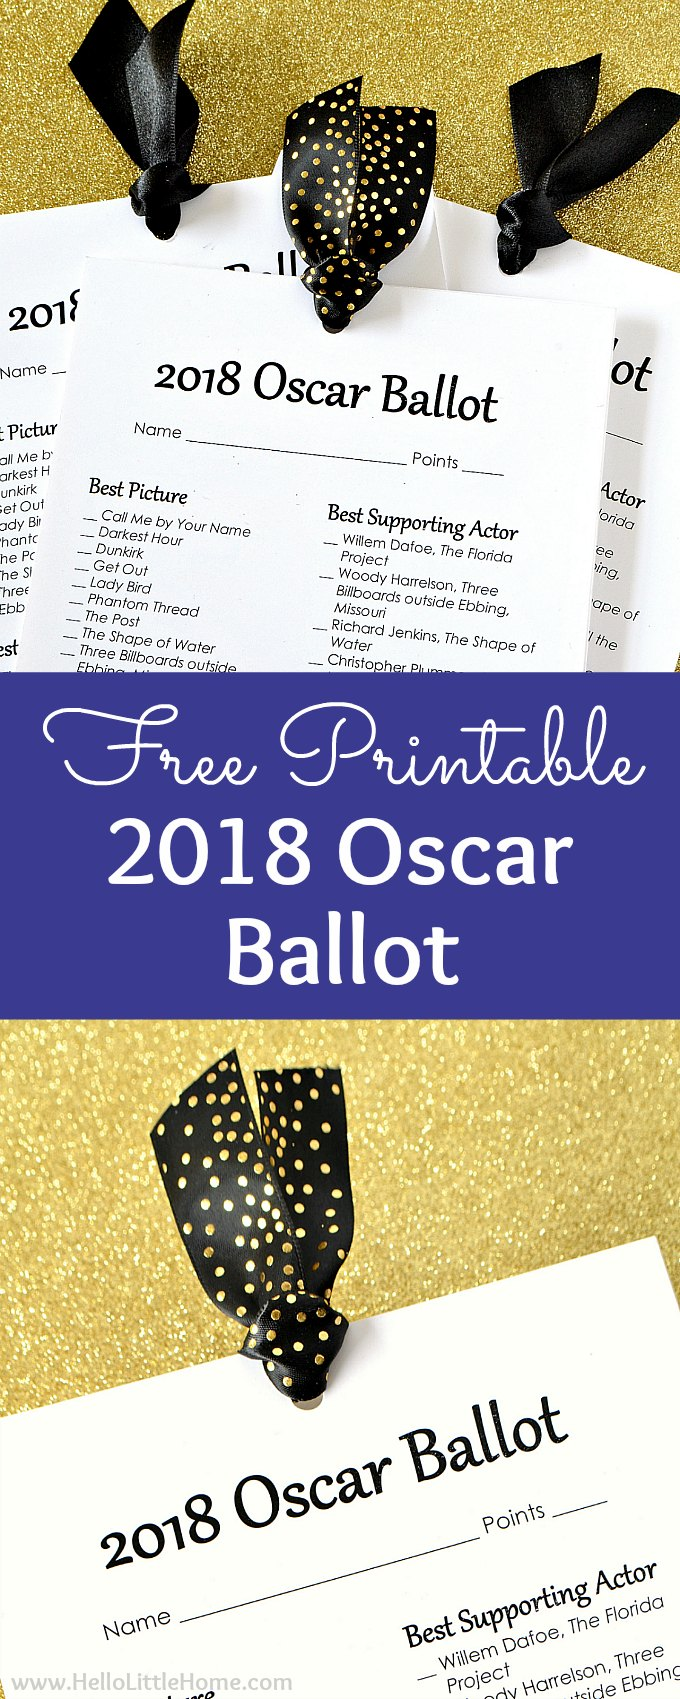 Free printable 2018 Oscar Ballot! Looking for Oscar party ideas? Download this printable Oscar ballot to track Academy Award winner predictions and red carpet faves! This free printable Oscar nominations ballot is the perfect addition to your Academy Awards party. Plus, tips for assembling the free Oscar Ballots for your viewing party or a fun night at home for movie lovers! | Hello Little Home #oscars #oscarparty #oscars2018 #academyawards #awardshowparty #2018oscarballot #oscarballot